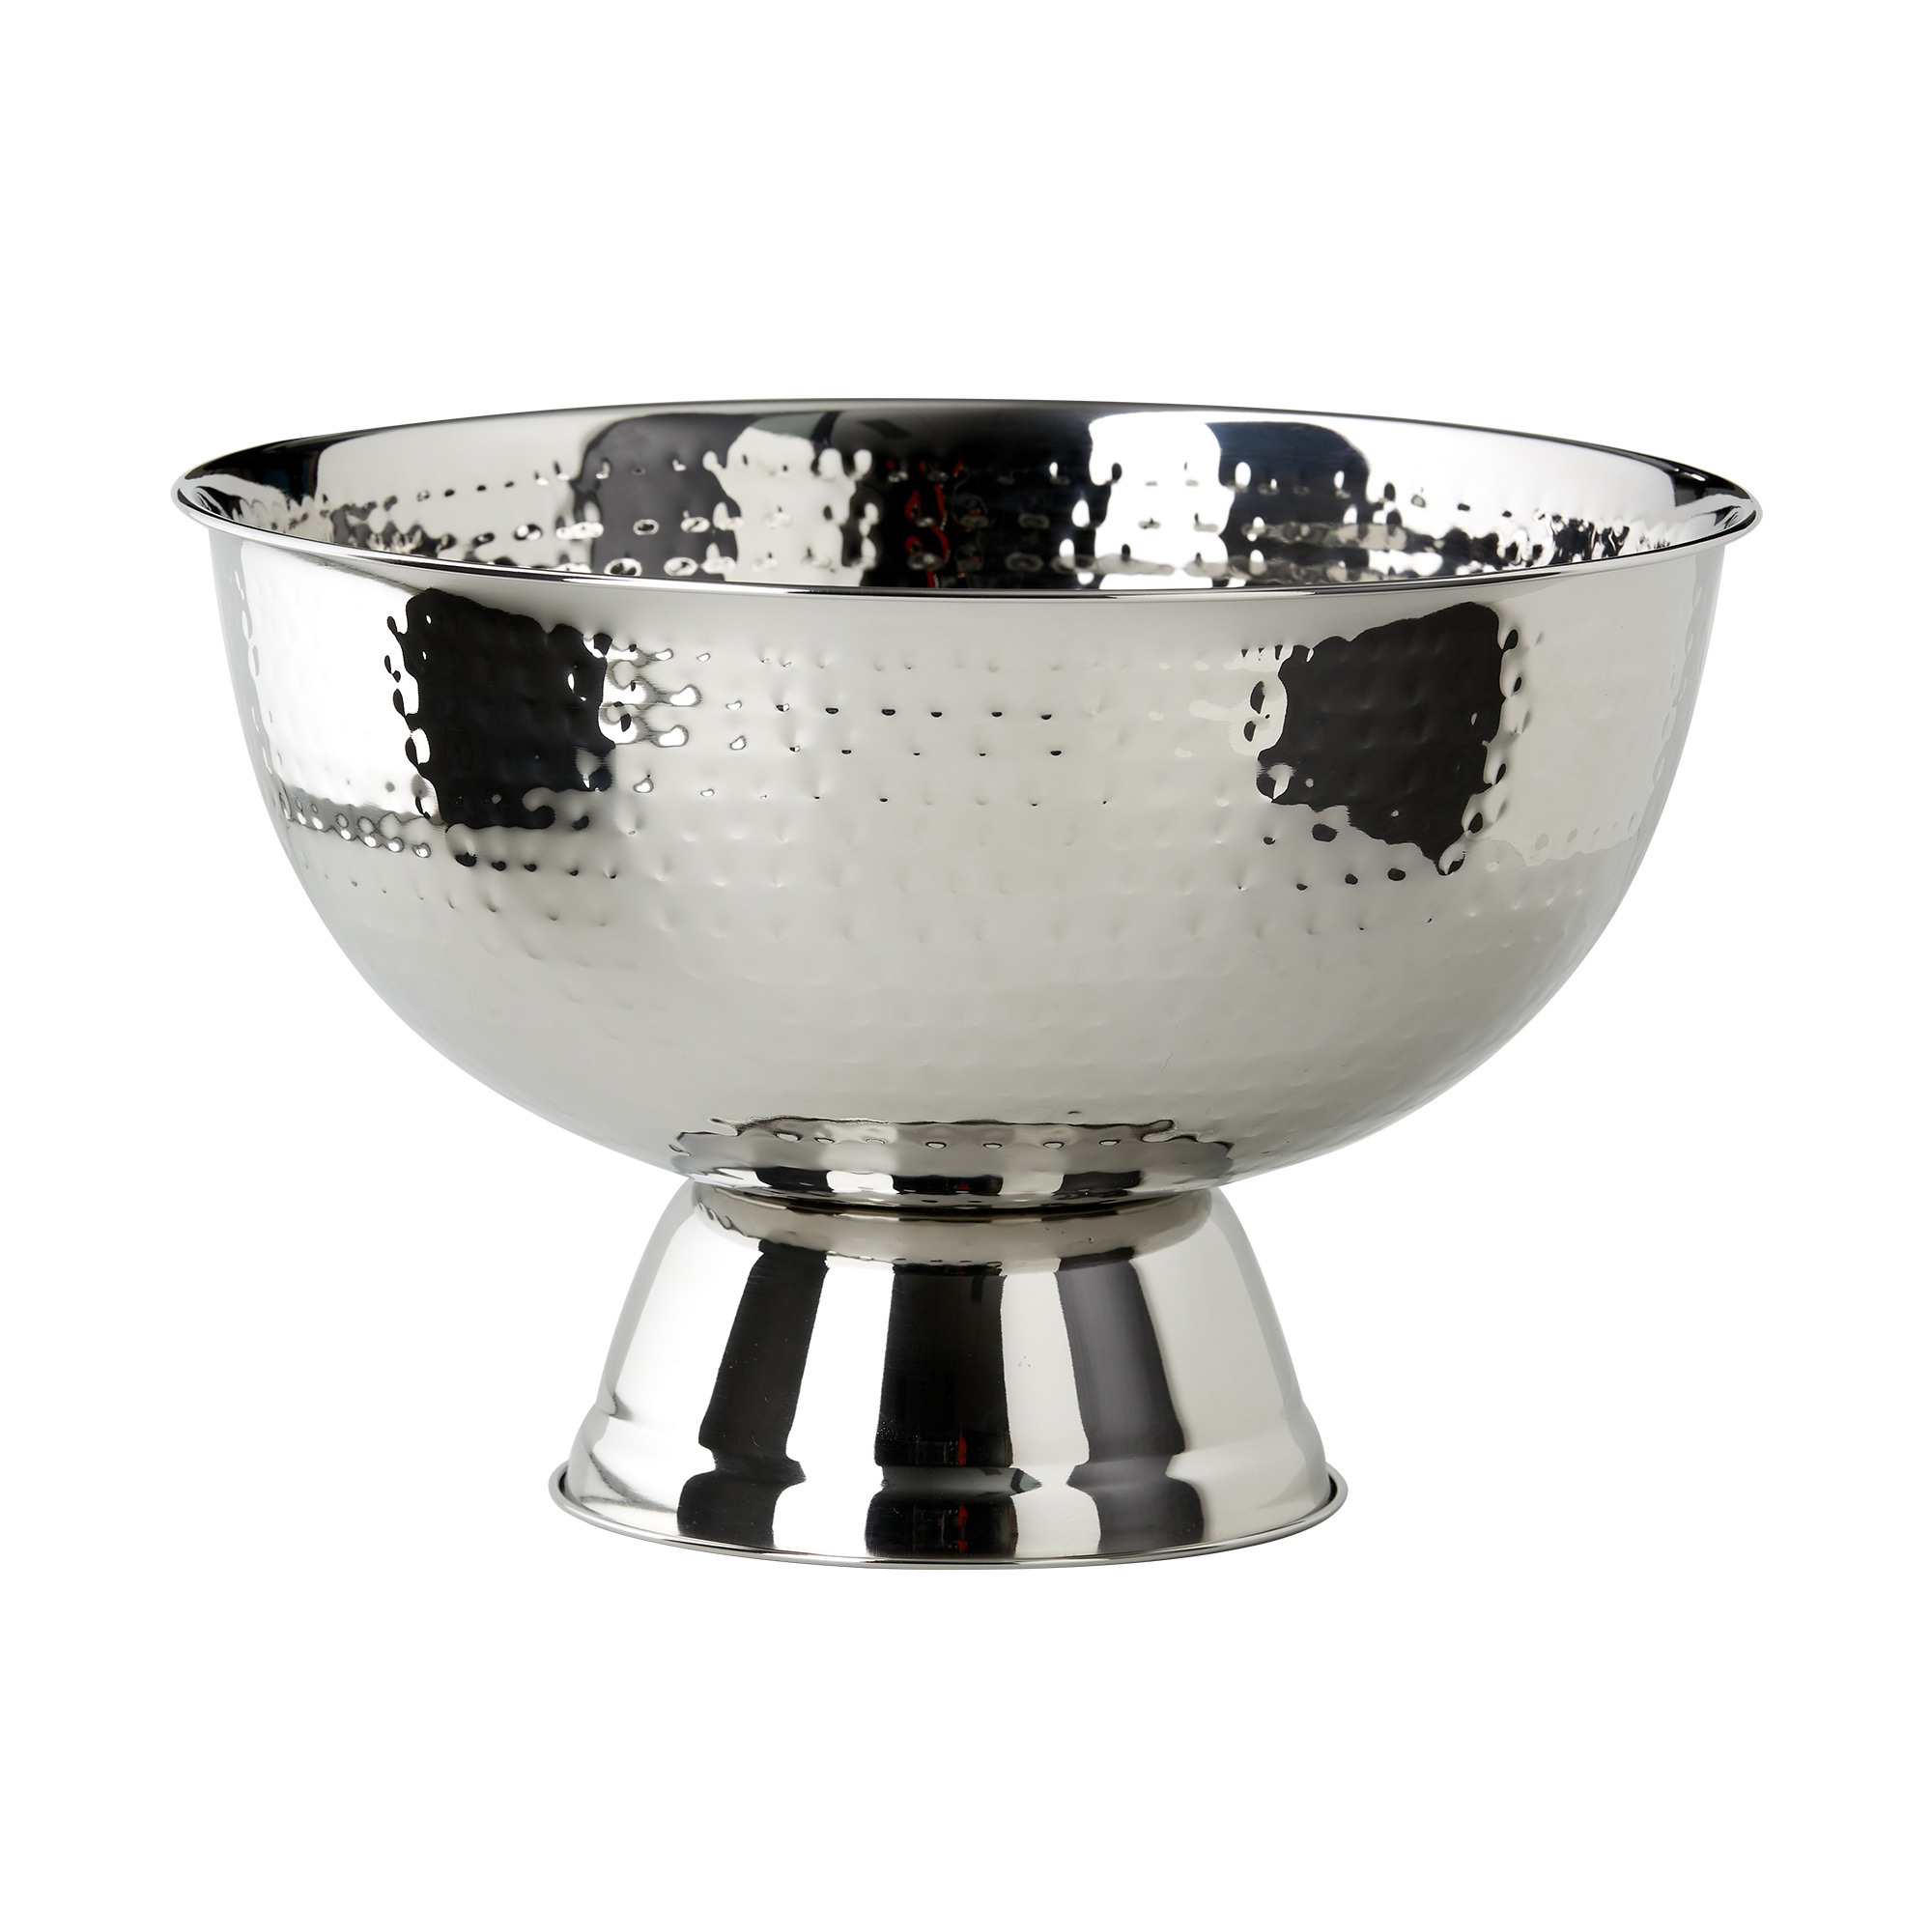 Salisbury & Co Hemingway Hammered Champagne Bowl 35x22.5cm